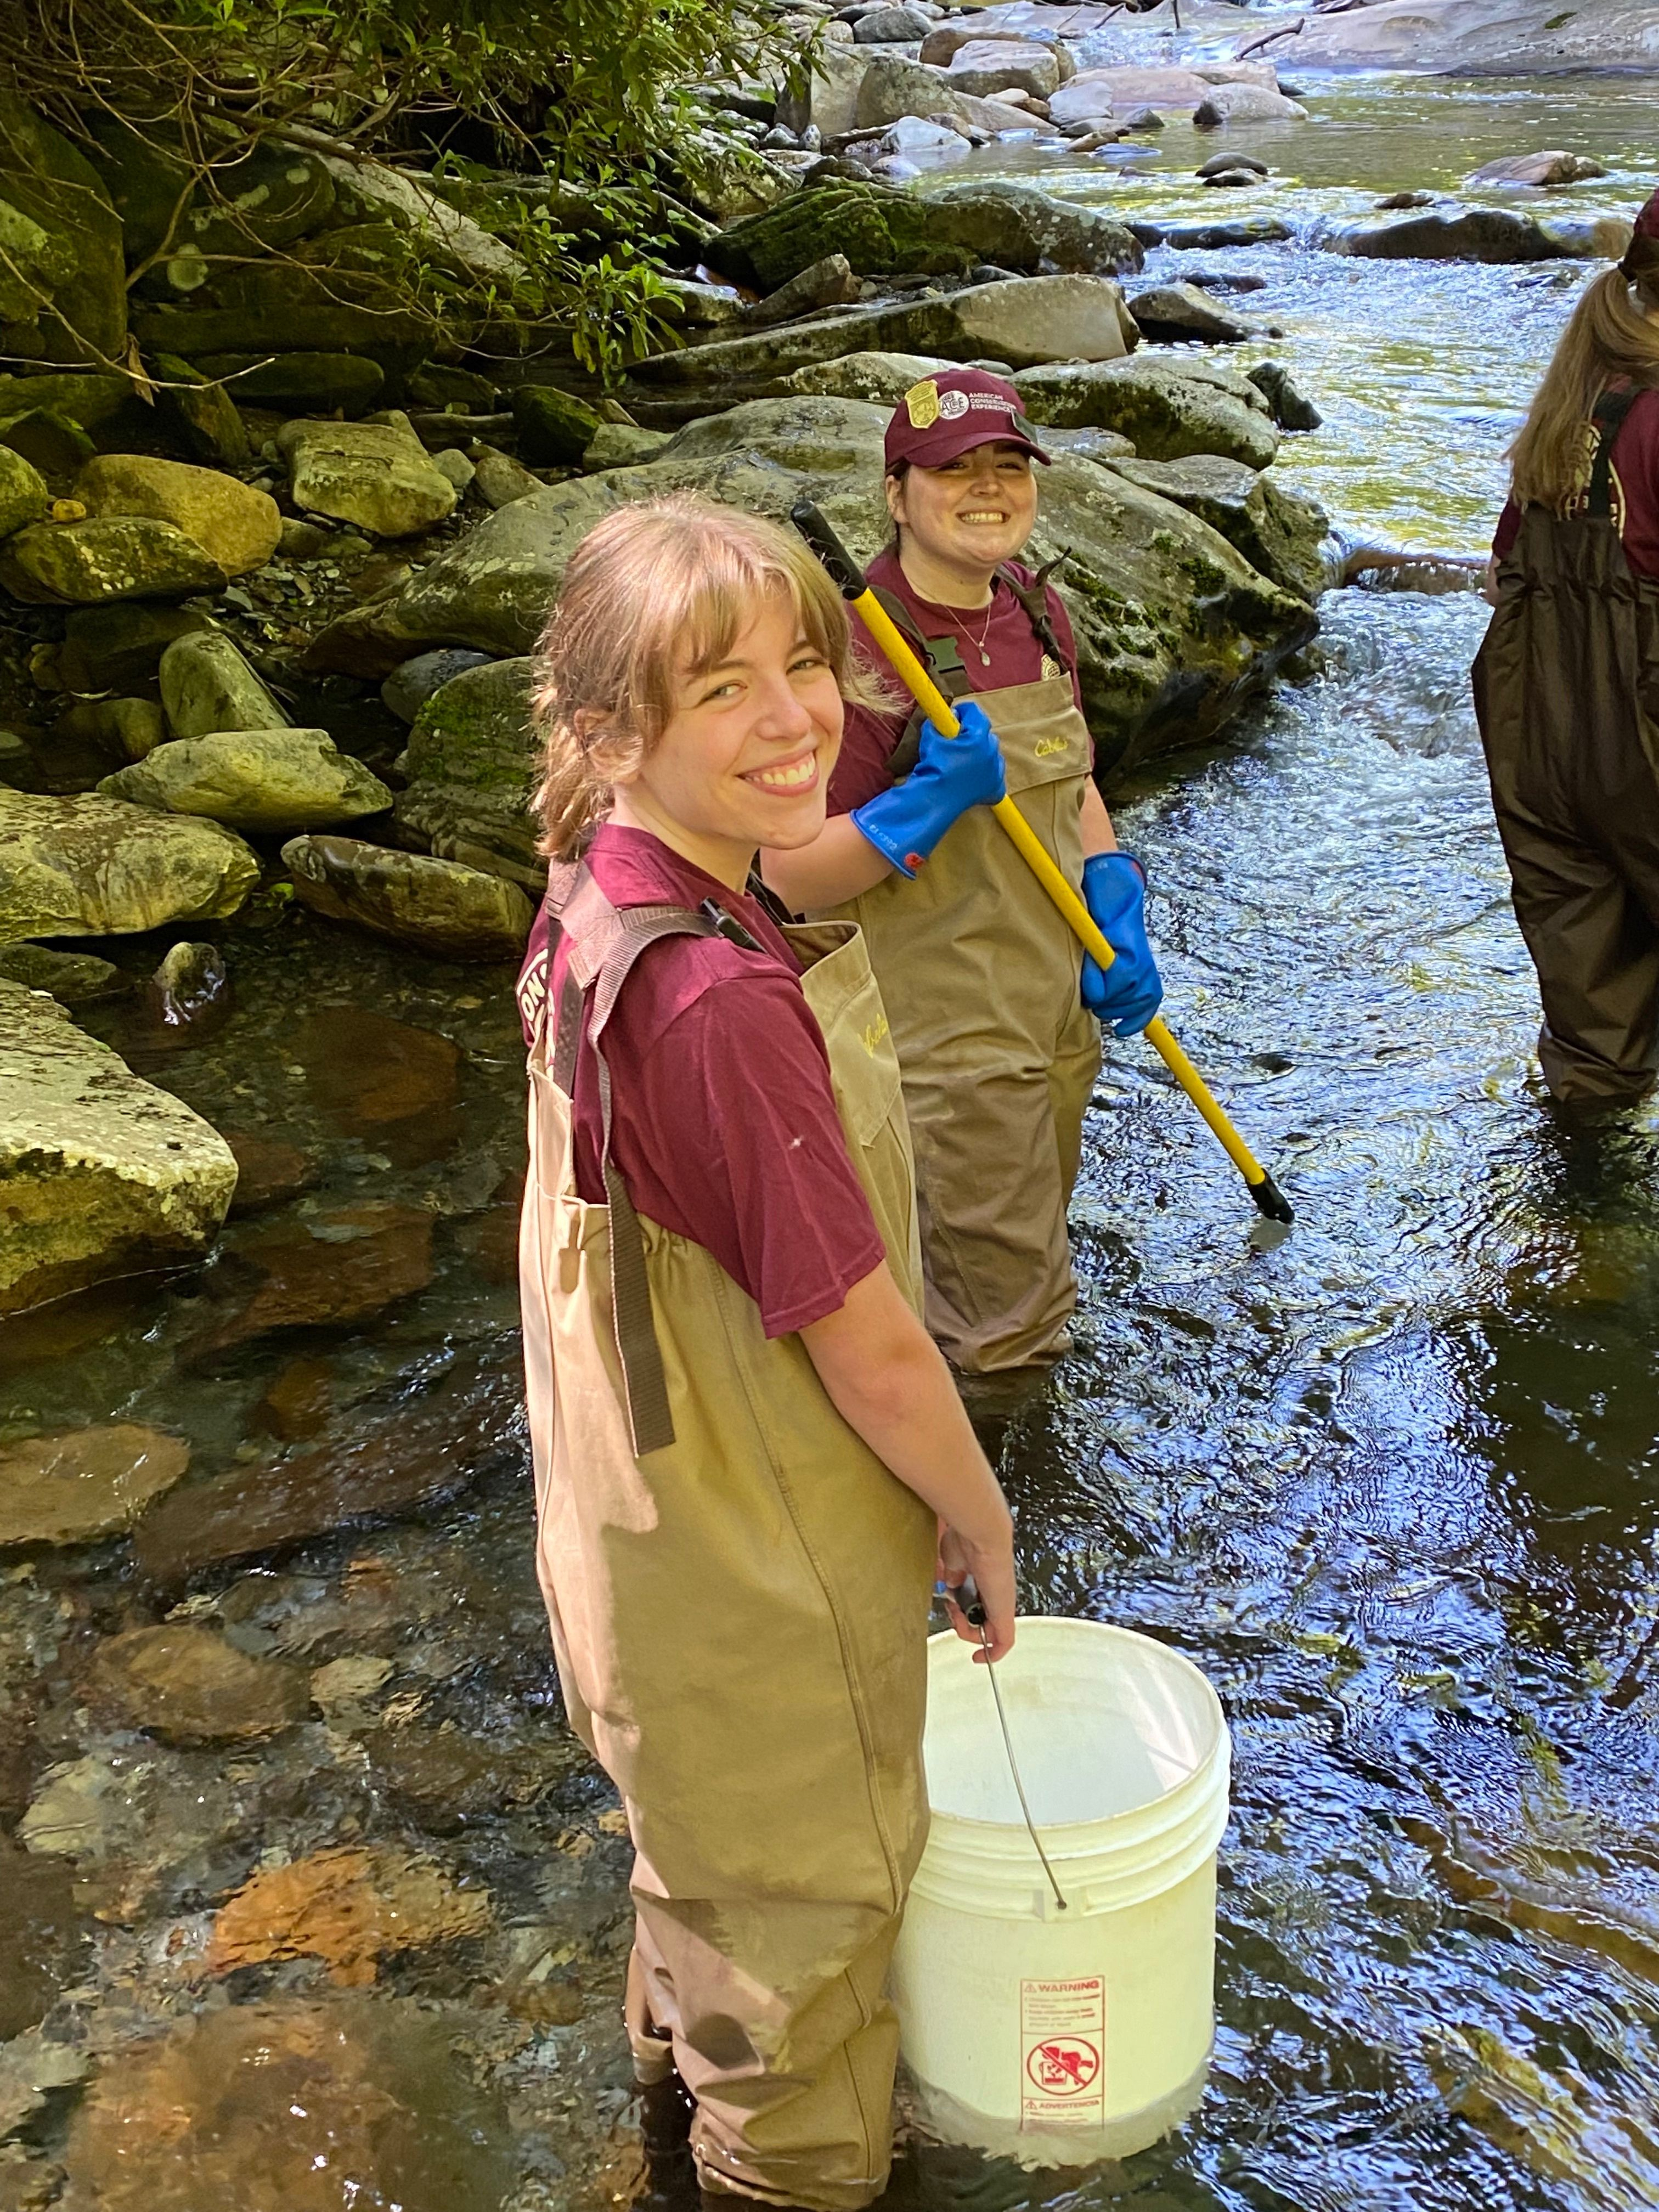 Great Smoky Mountains National Park interns Kaylie Hallcox and Morgan Kirkpatrick spent time monitoring fish populations this summer. They were supporting fisheries technicians who had stunned the fish, following them with nets and buckets to collect fish for identification, counting, weighing, and measuring. Image courtesy of NPS.